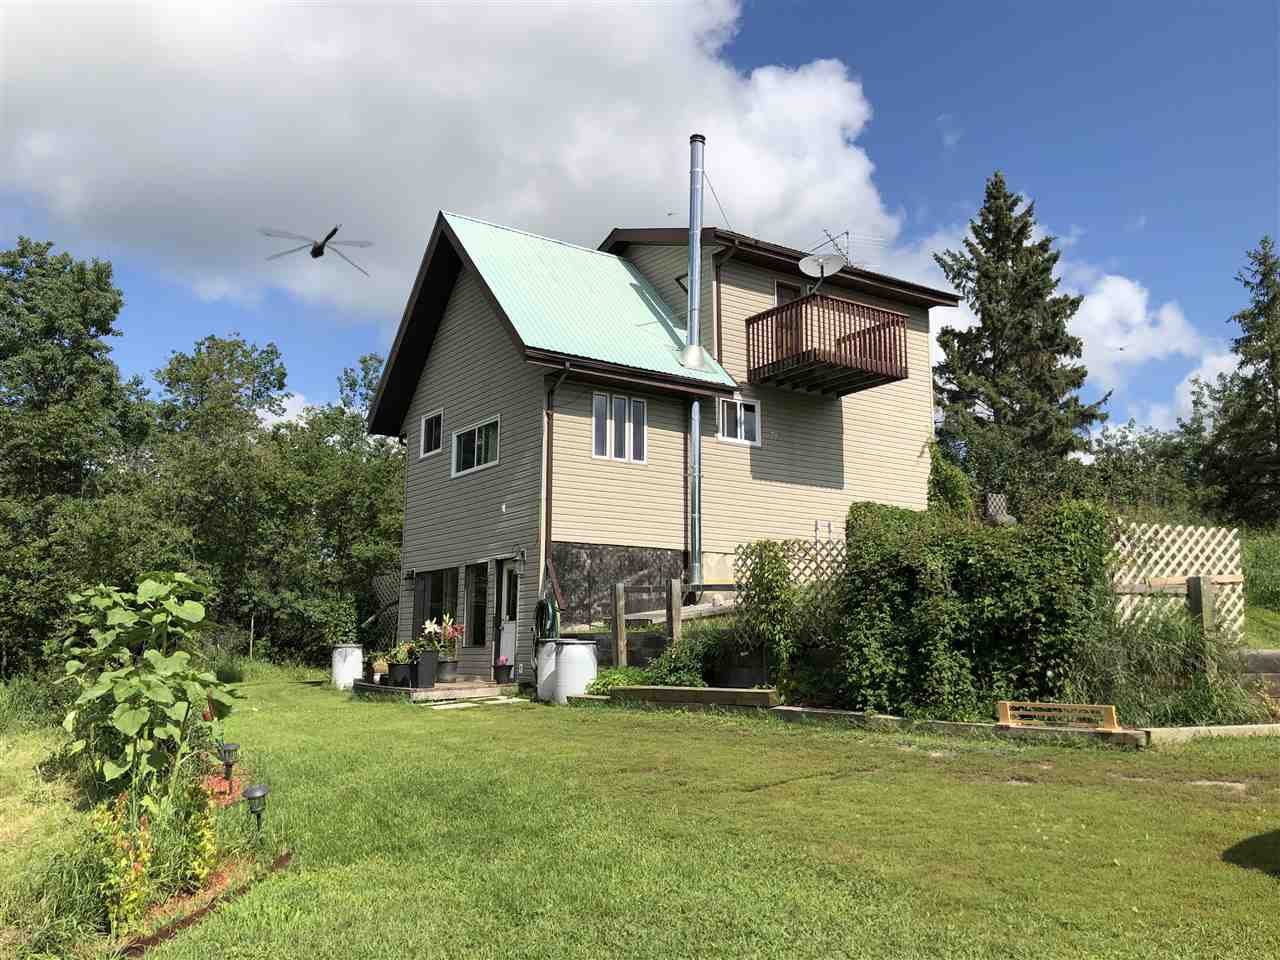 Main Photo: 104 472084 RGE RD 241: Rural Wetaskiwin County House for sale : MLS®# E4170322